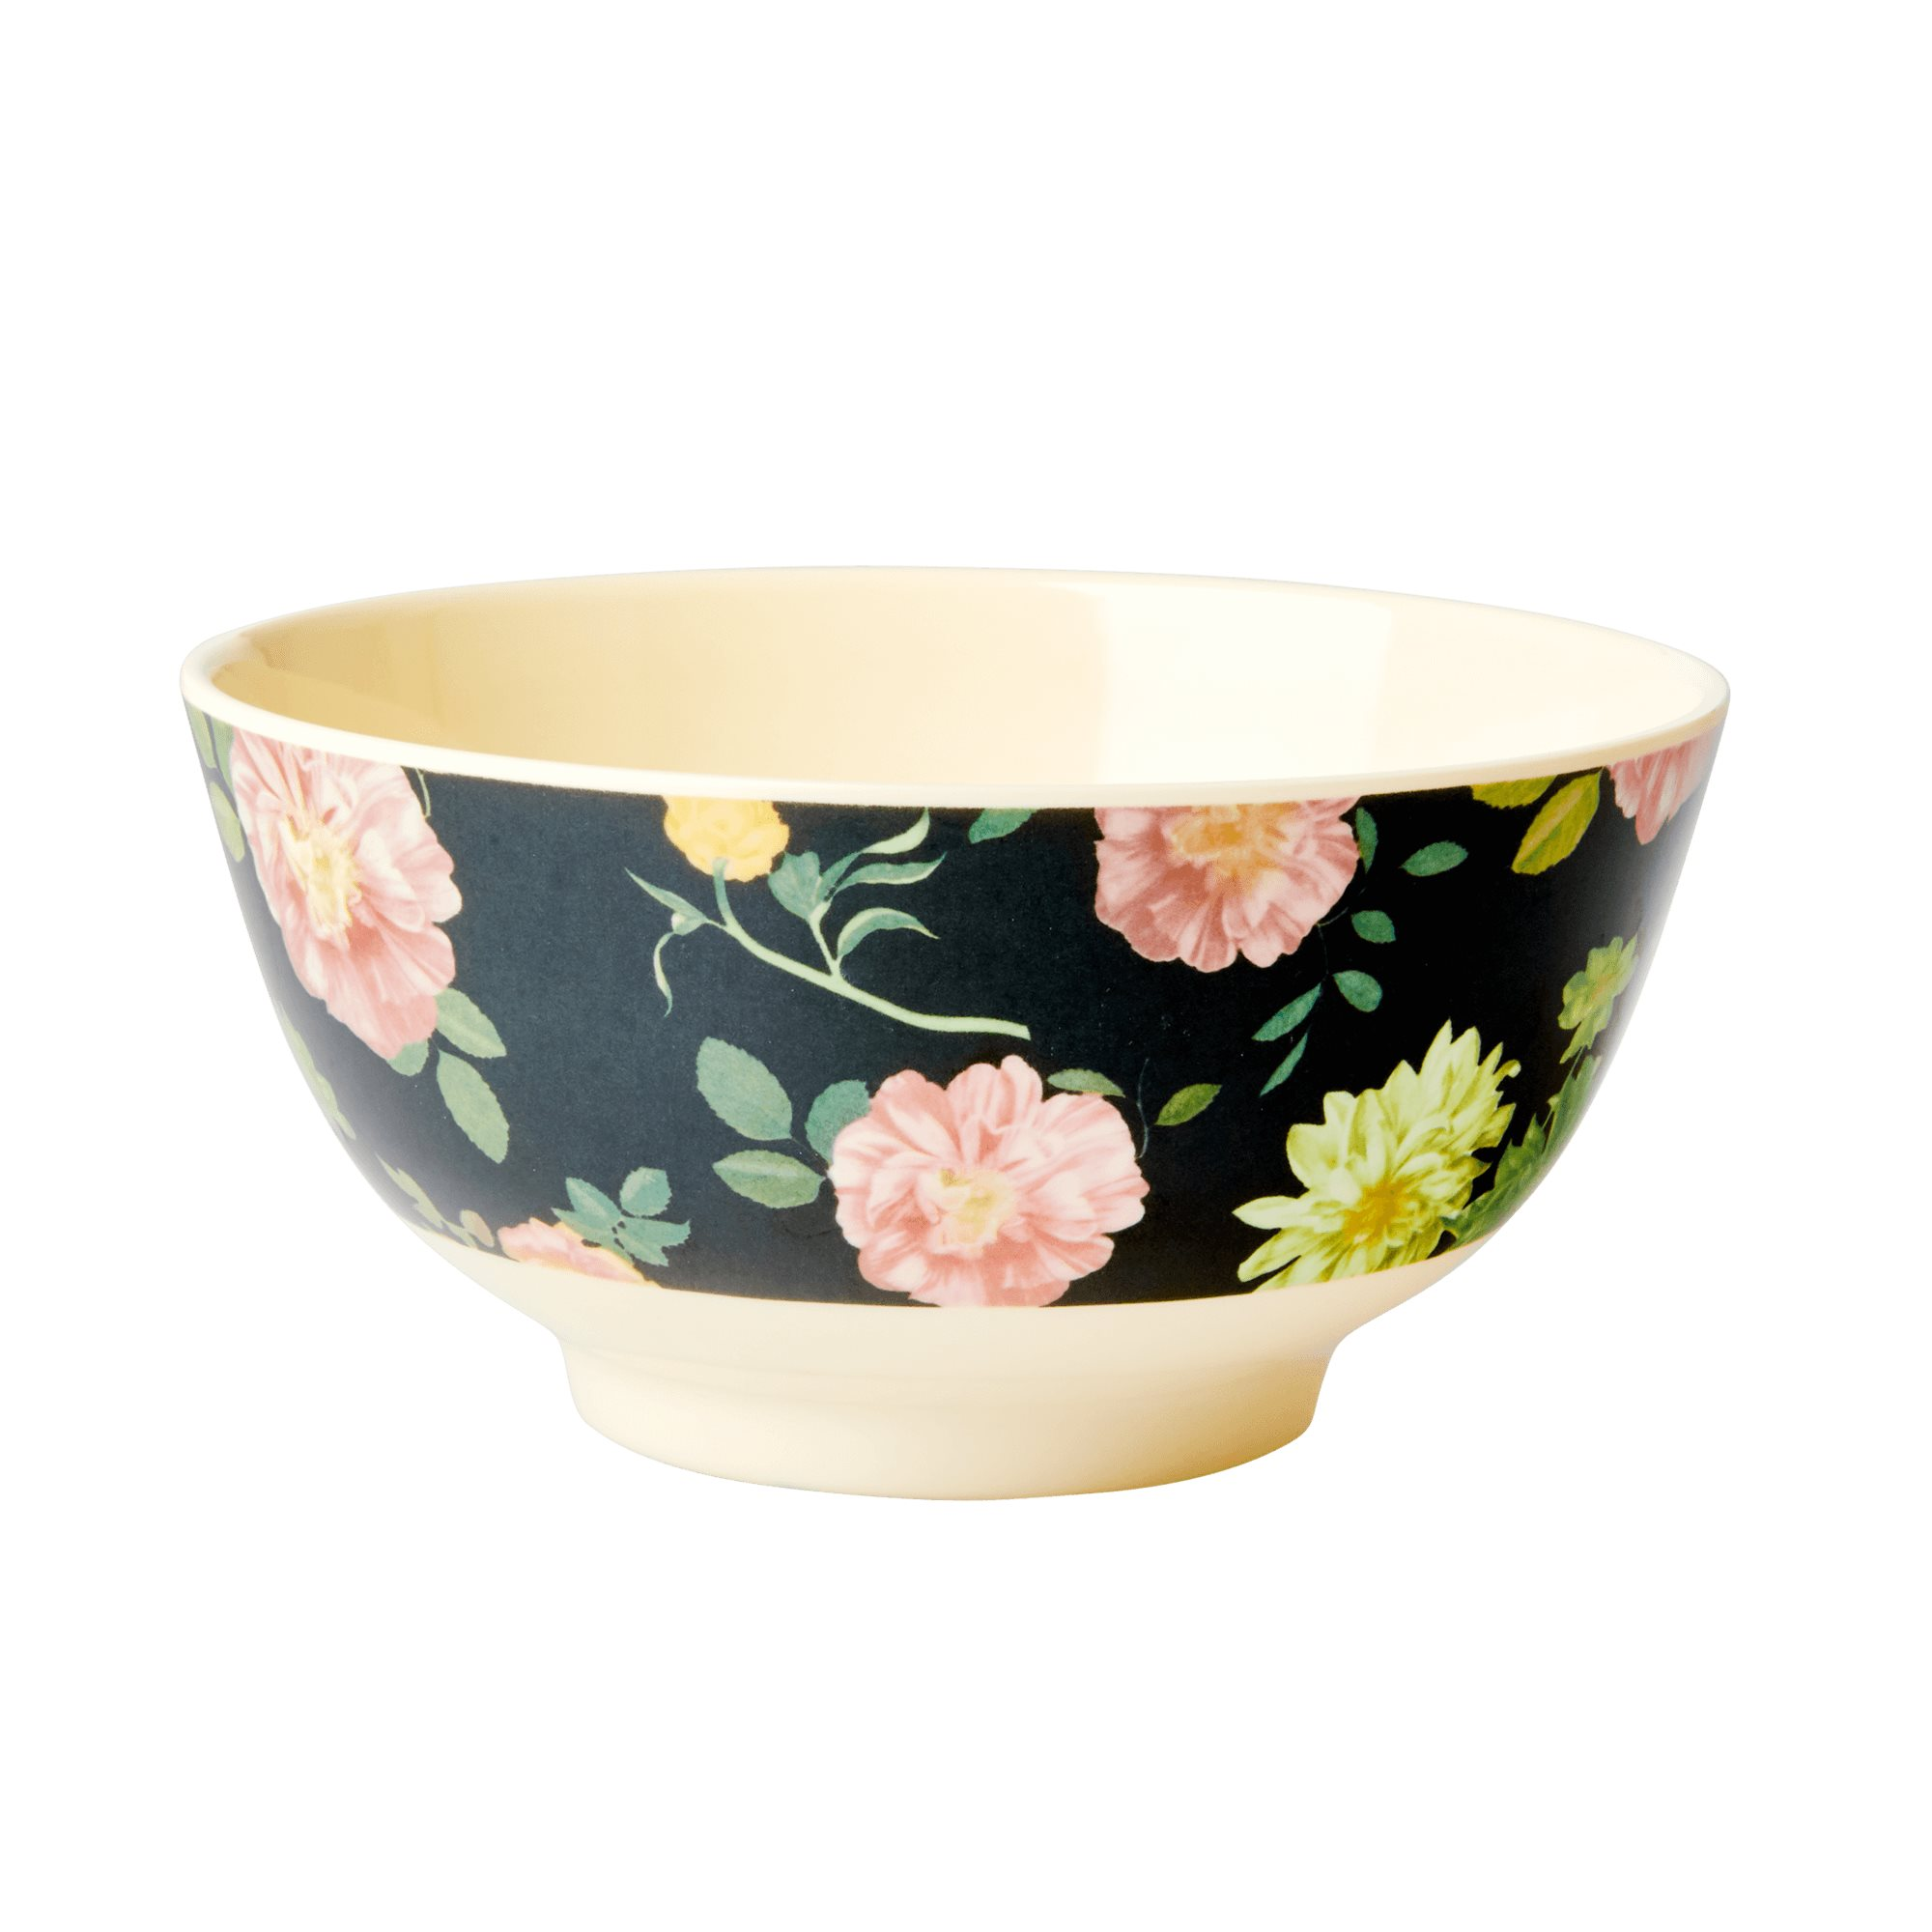 Medium Melamine Bowl - Dark Rose Print - rice